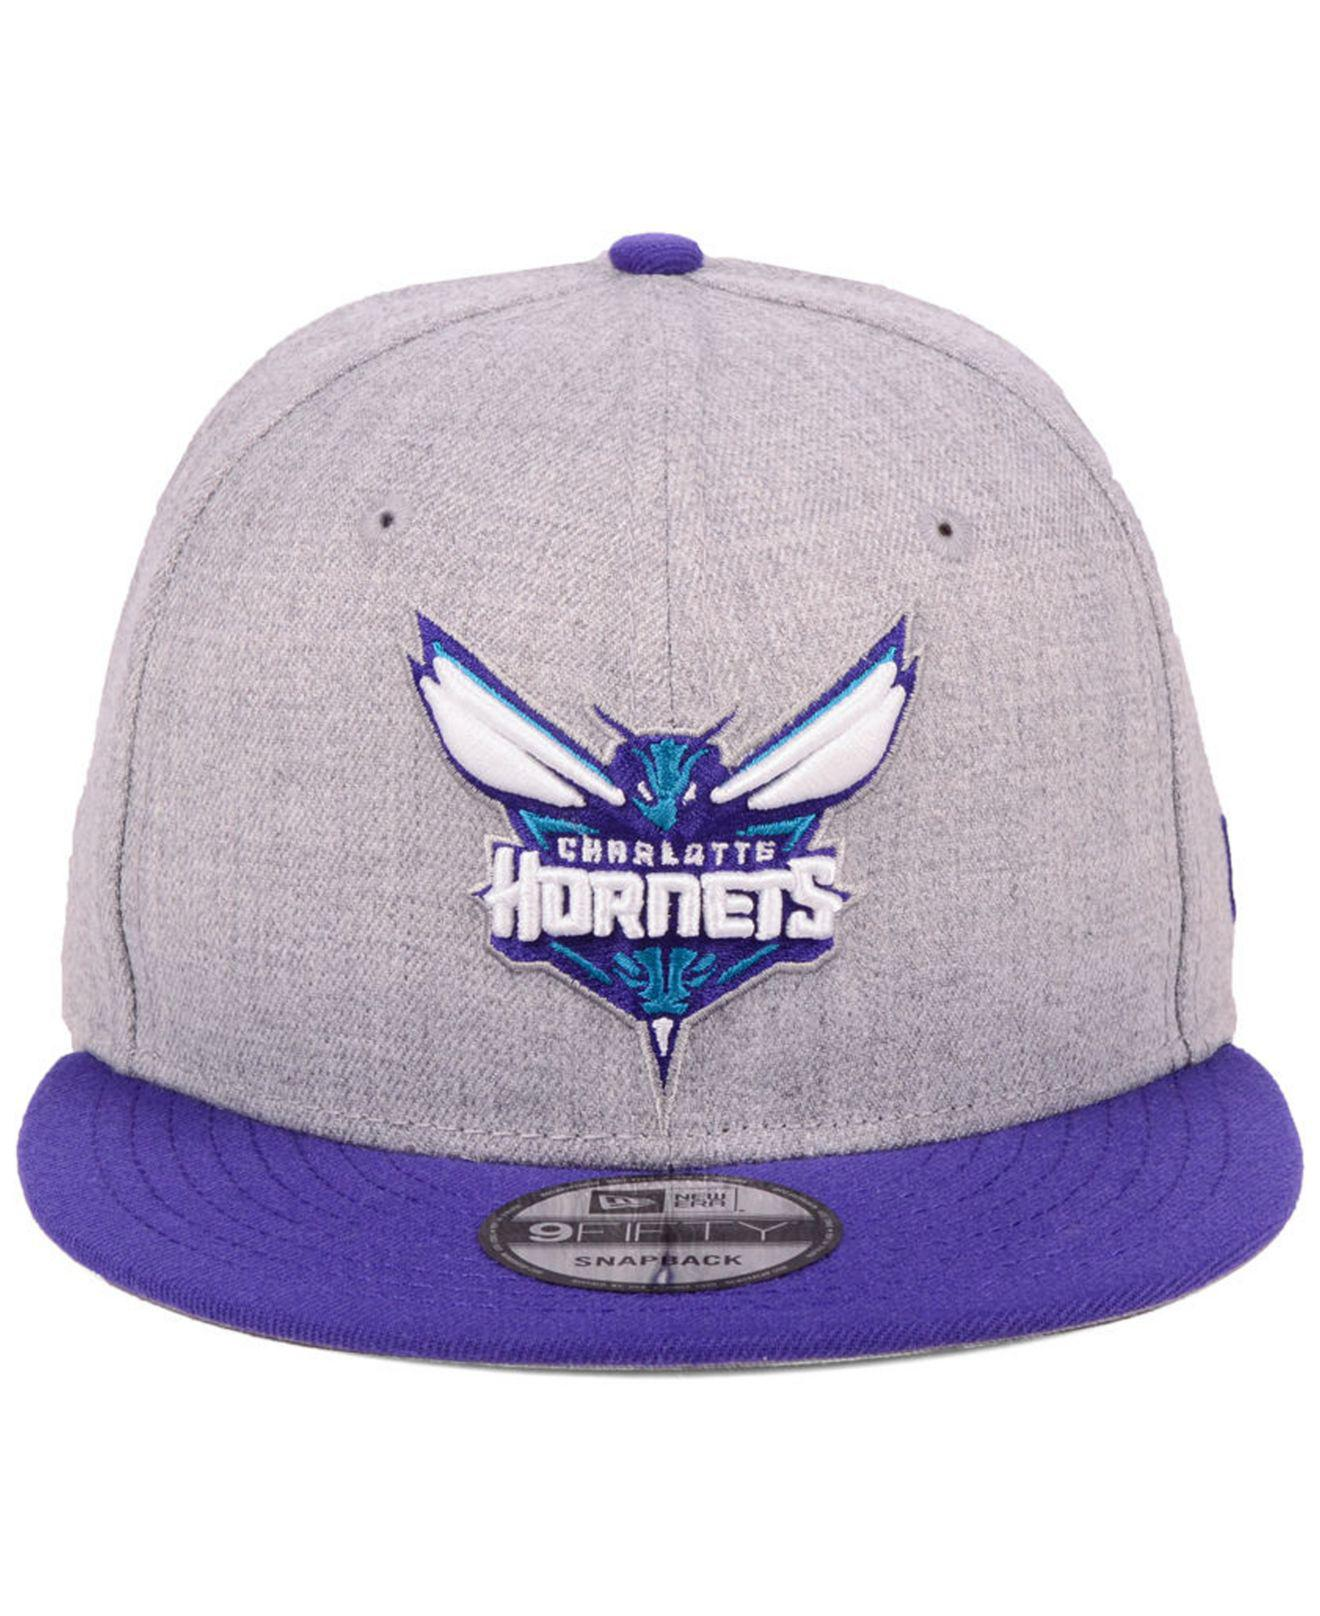 info for d3067 87ac2 ... promo code lyst ktz charlotte hornets heather gray 9fifty snapback cap  in purple for men dbae2